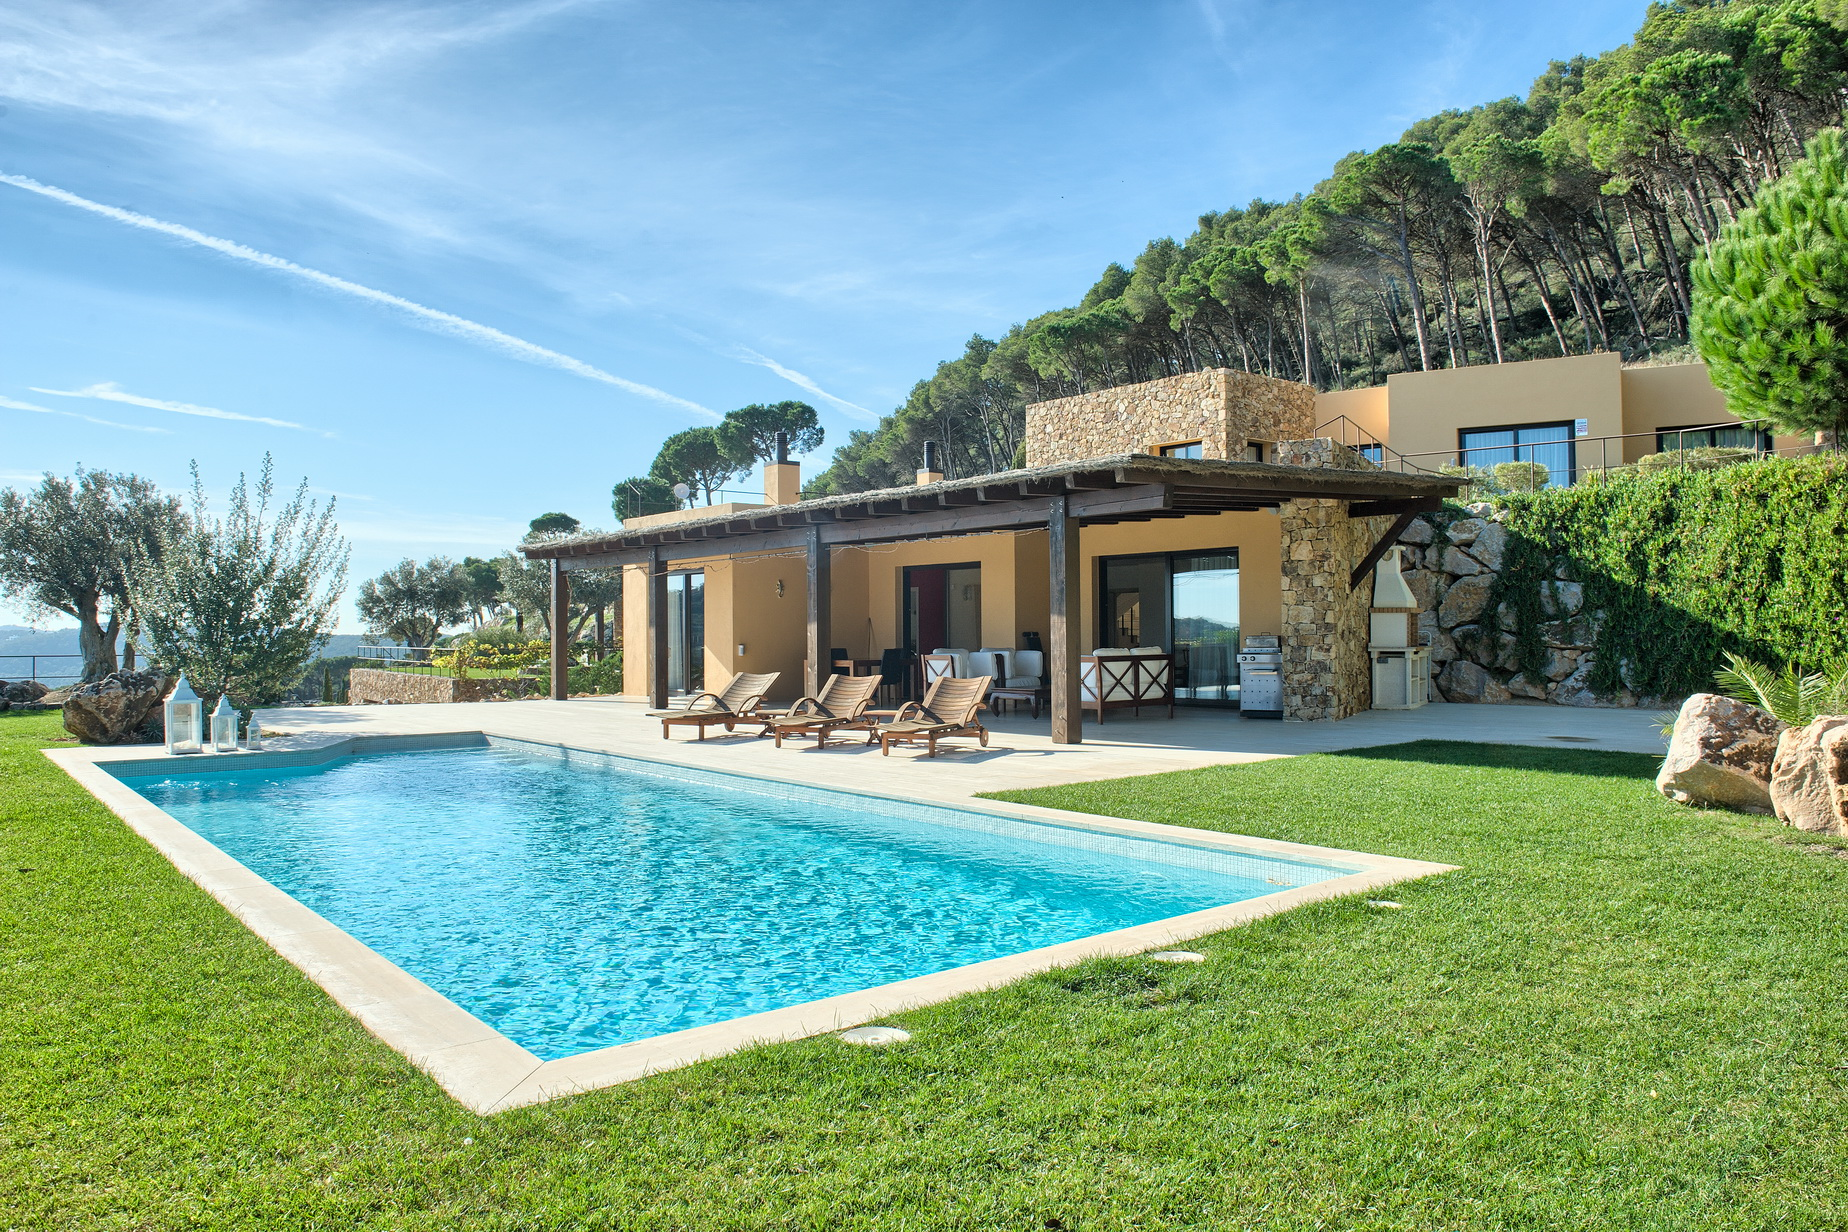 Villa per Vendita alle ore Luxury villa for sale with beautiful views to the sea in Aiguablava, Begur Begur, Costa Brava, 17255 Spagna